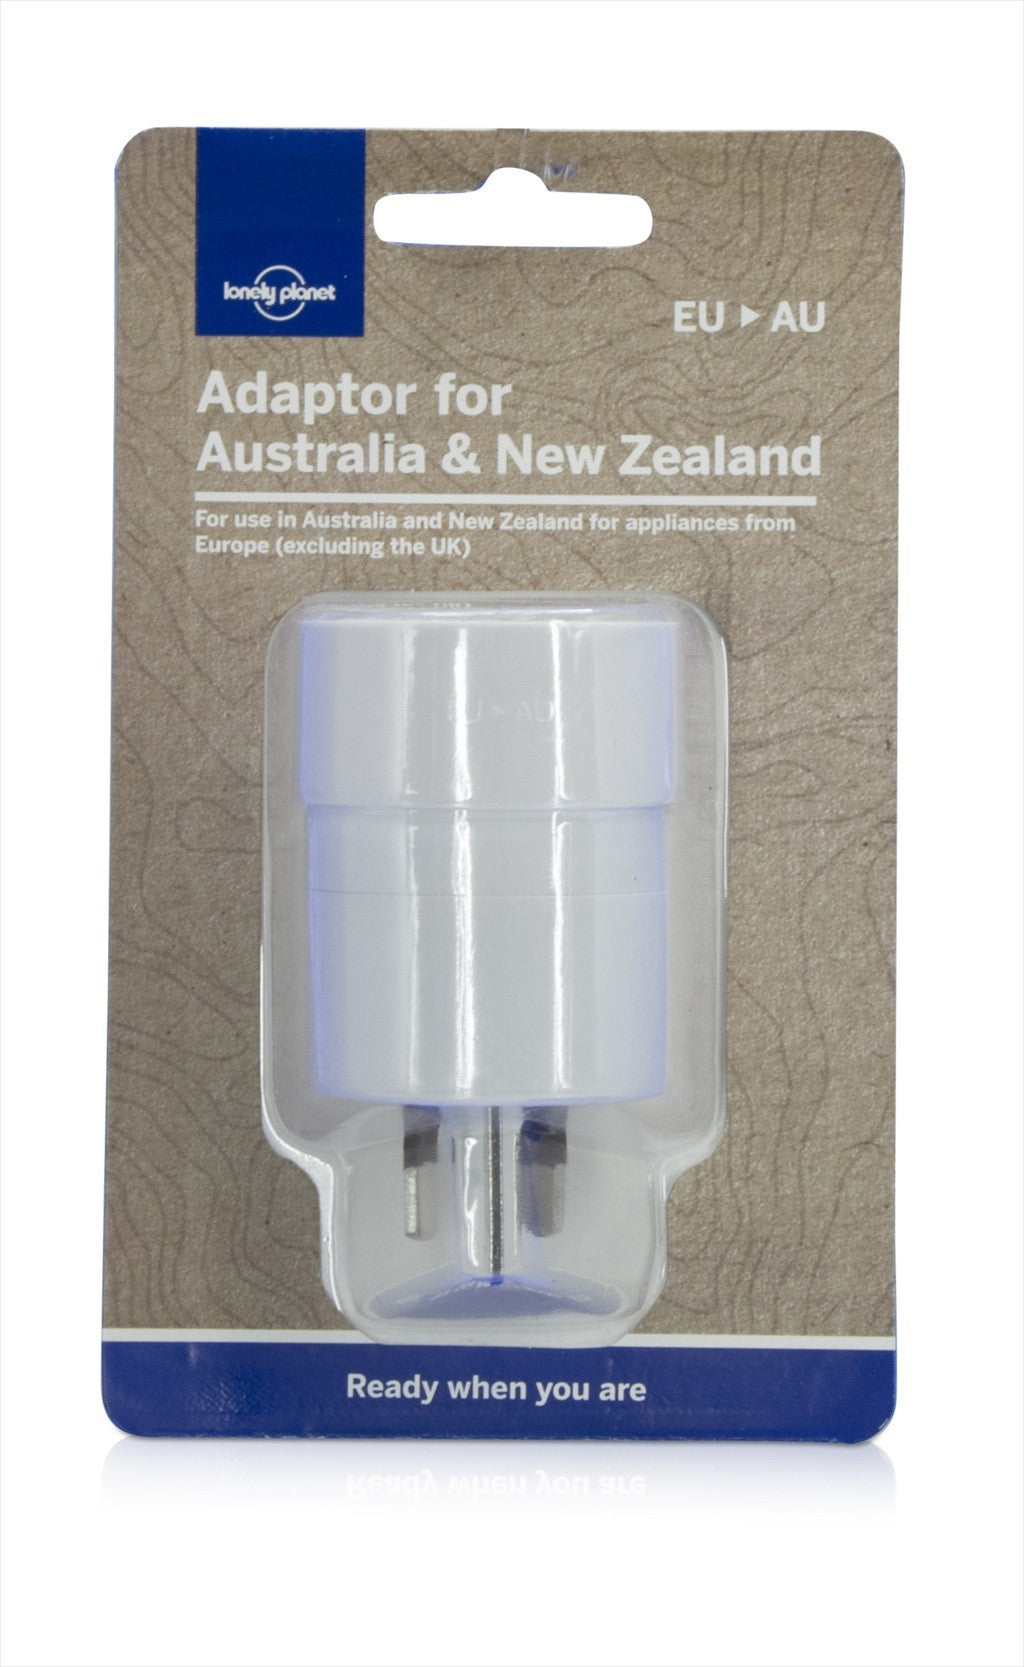 POWER ADAPTOR EUROPE - AUS & NZ - Charles Darwin University Bookshop